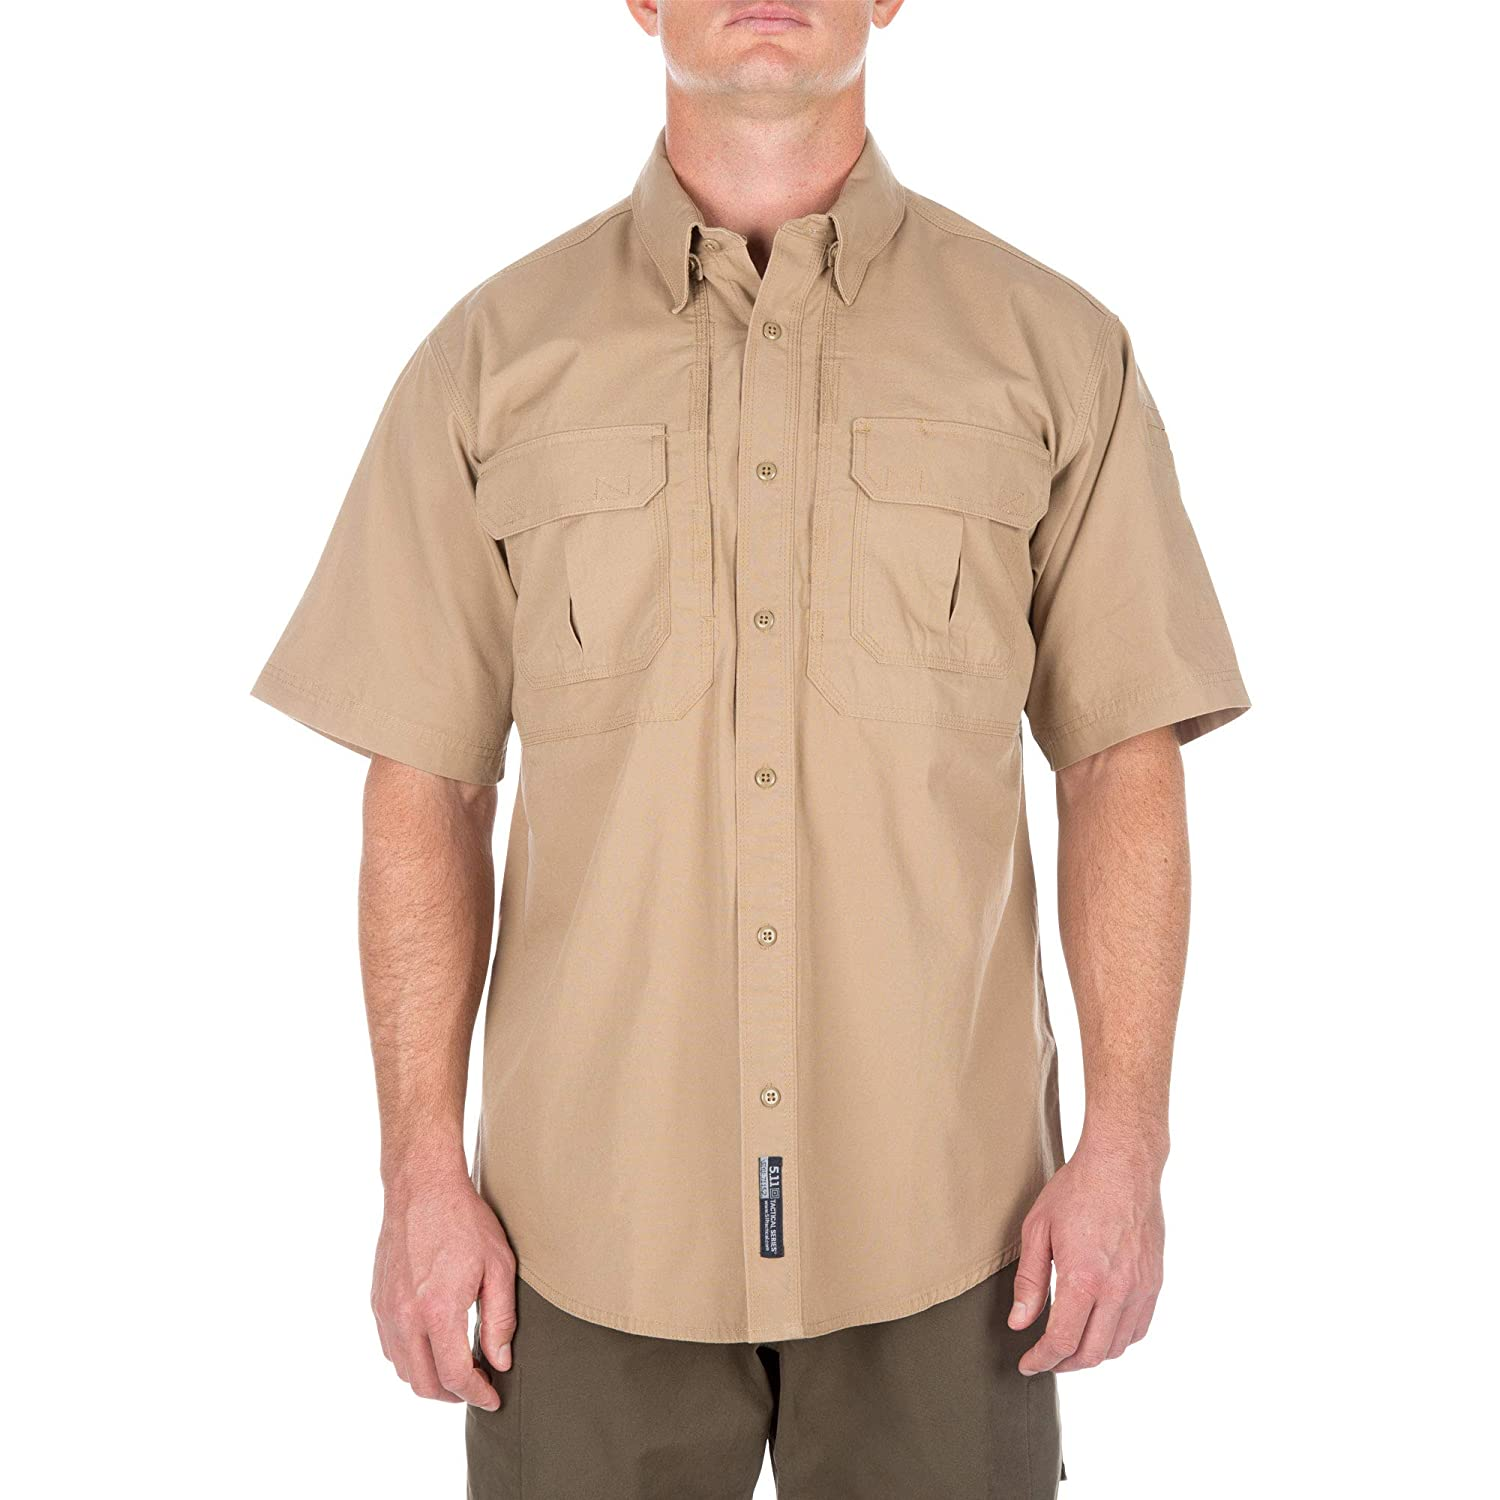 5.11 Herren Tactical   71152 Baumwolle Tactical Short Sleeve Shirt